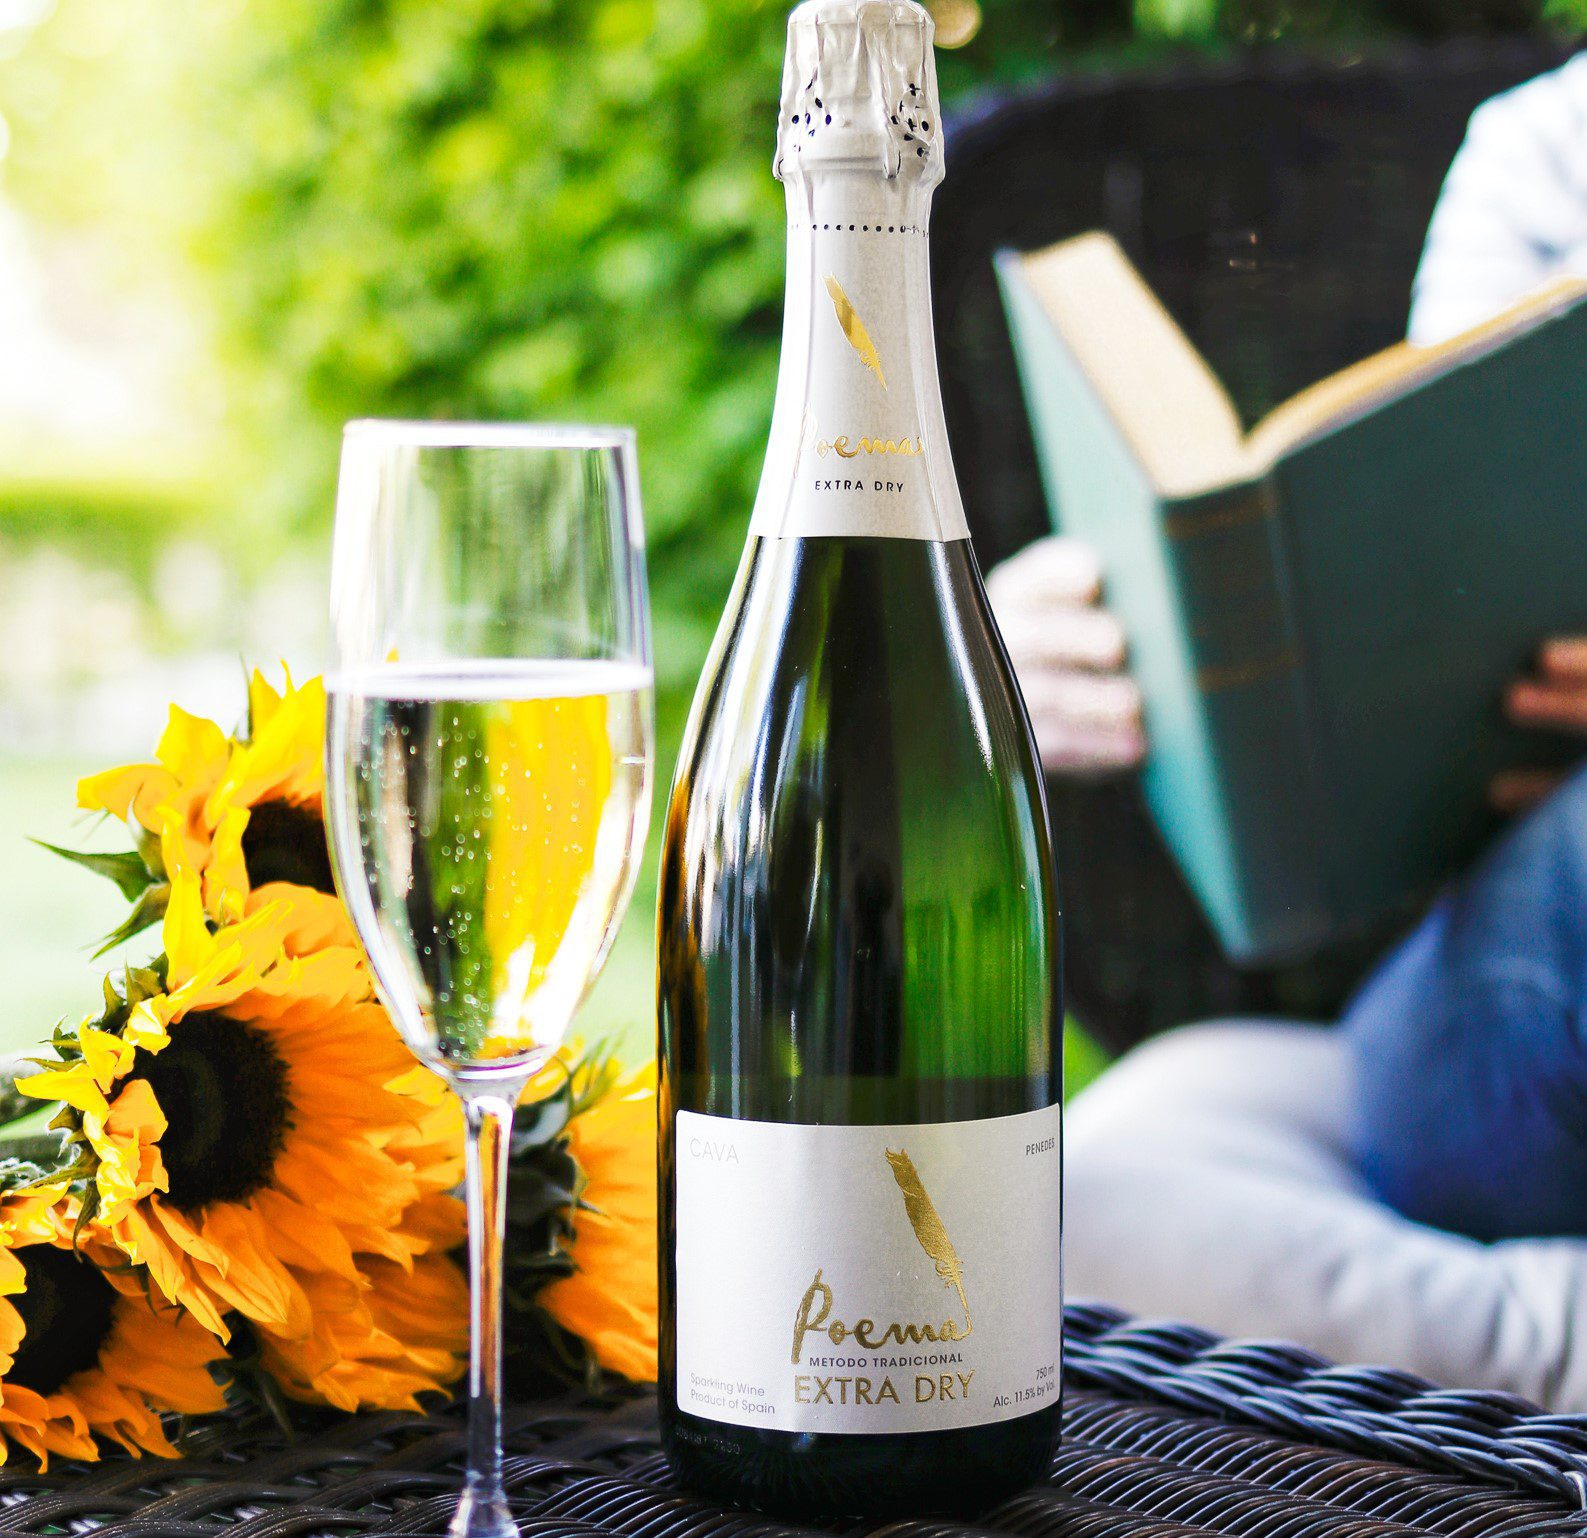 Poema Cava and reading a book with sunflowers